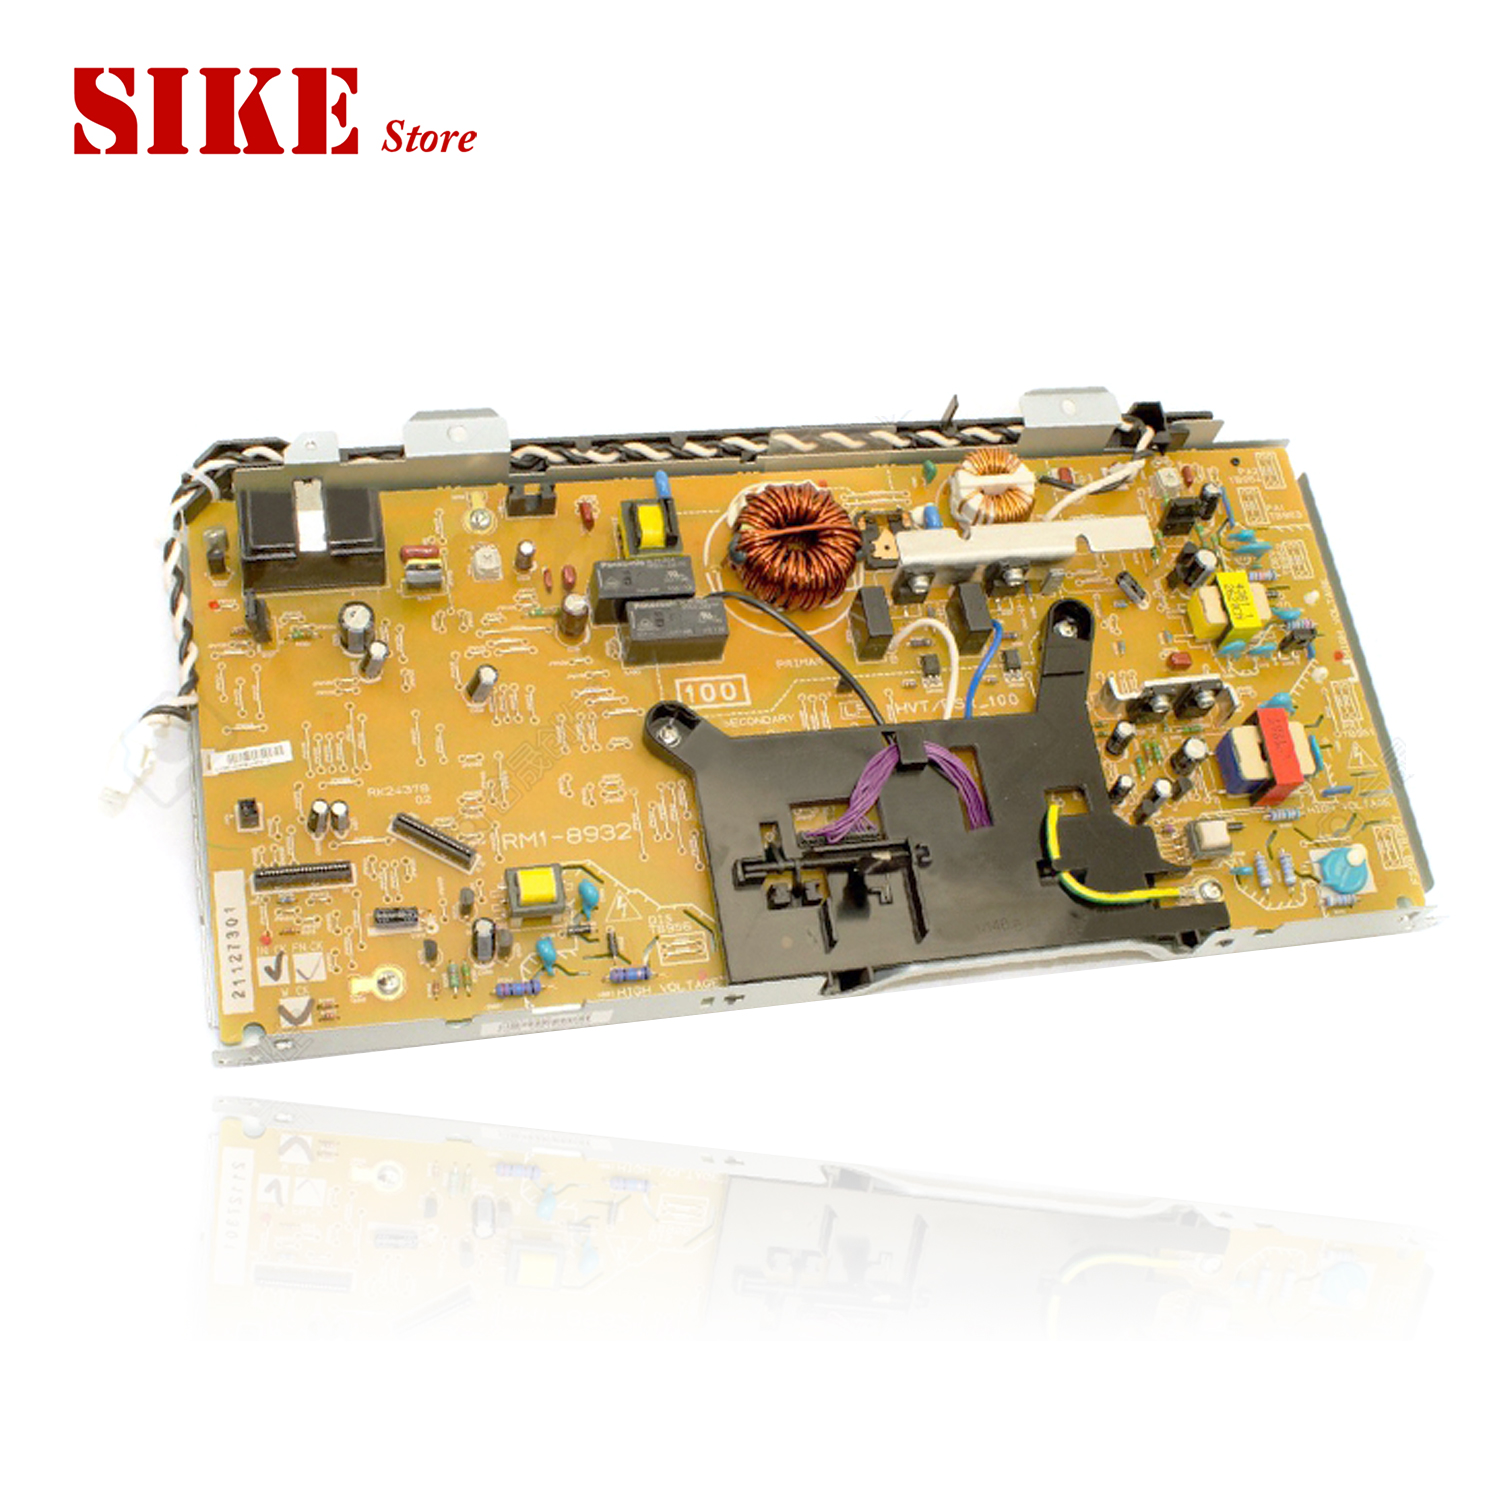 RM2 7538 RM2 7539 For HP M712 M725 M712dn M712n M712xh M725dn M725f M725z 712 725 High Voltage Power Supply Board RM1 8932 Printer Parts     - title=